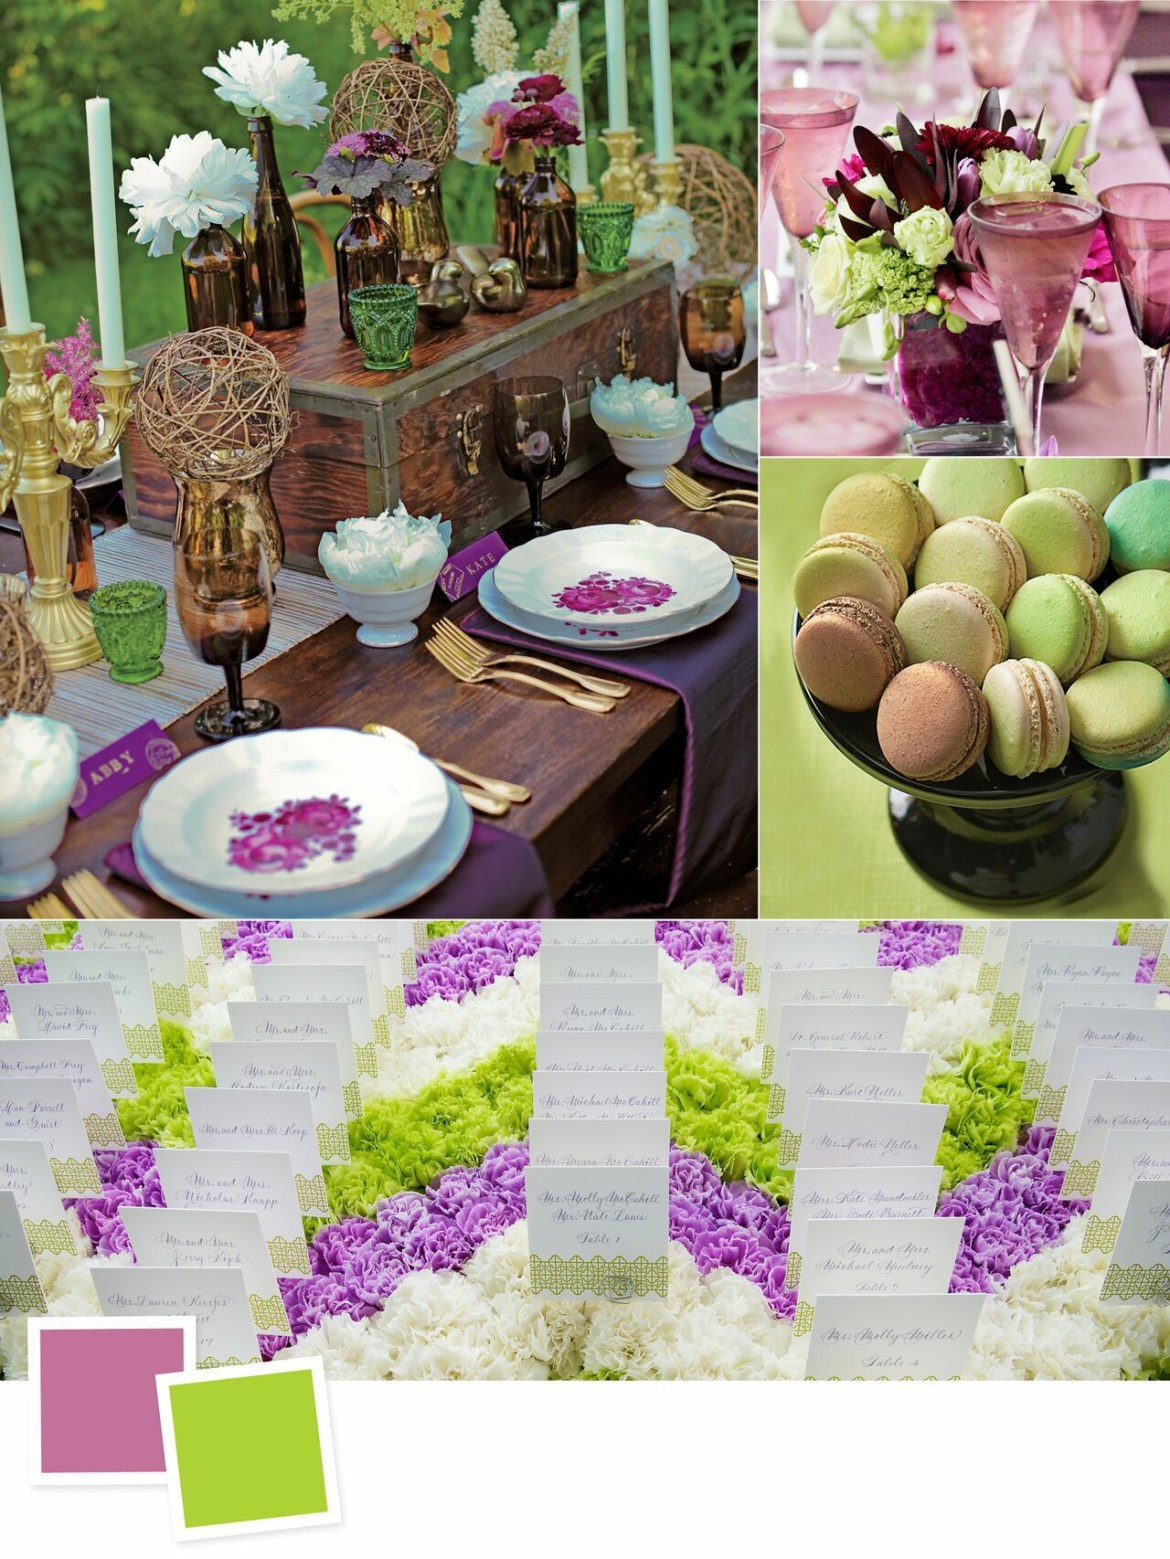 Evergreen Wedding Colour Combos For Your Wedding Decoration   Amethyst and Acid Green Wedding Colors